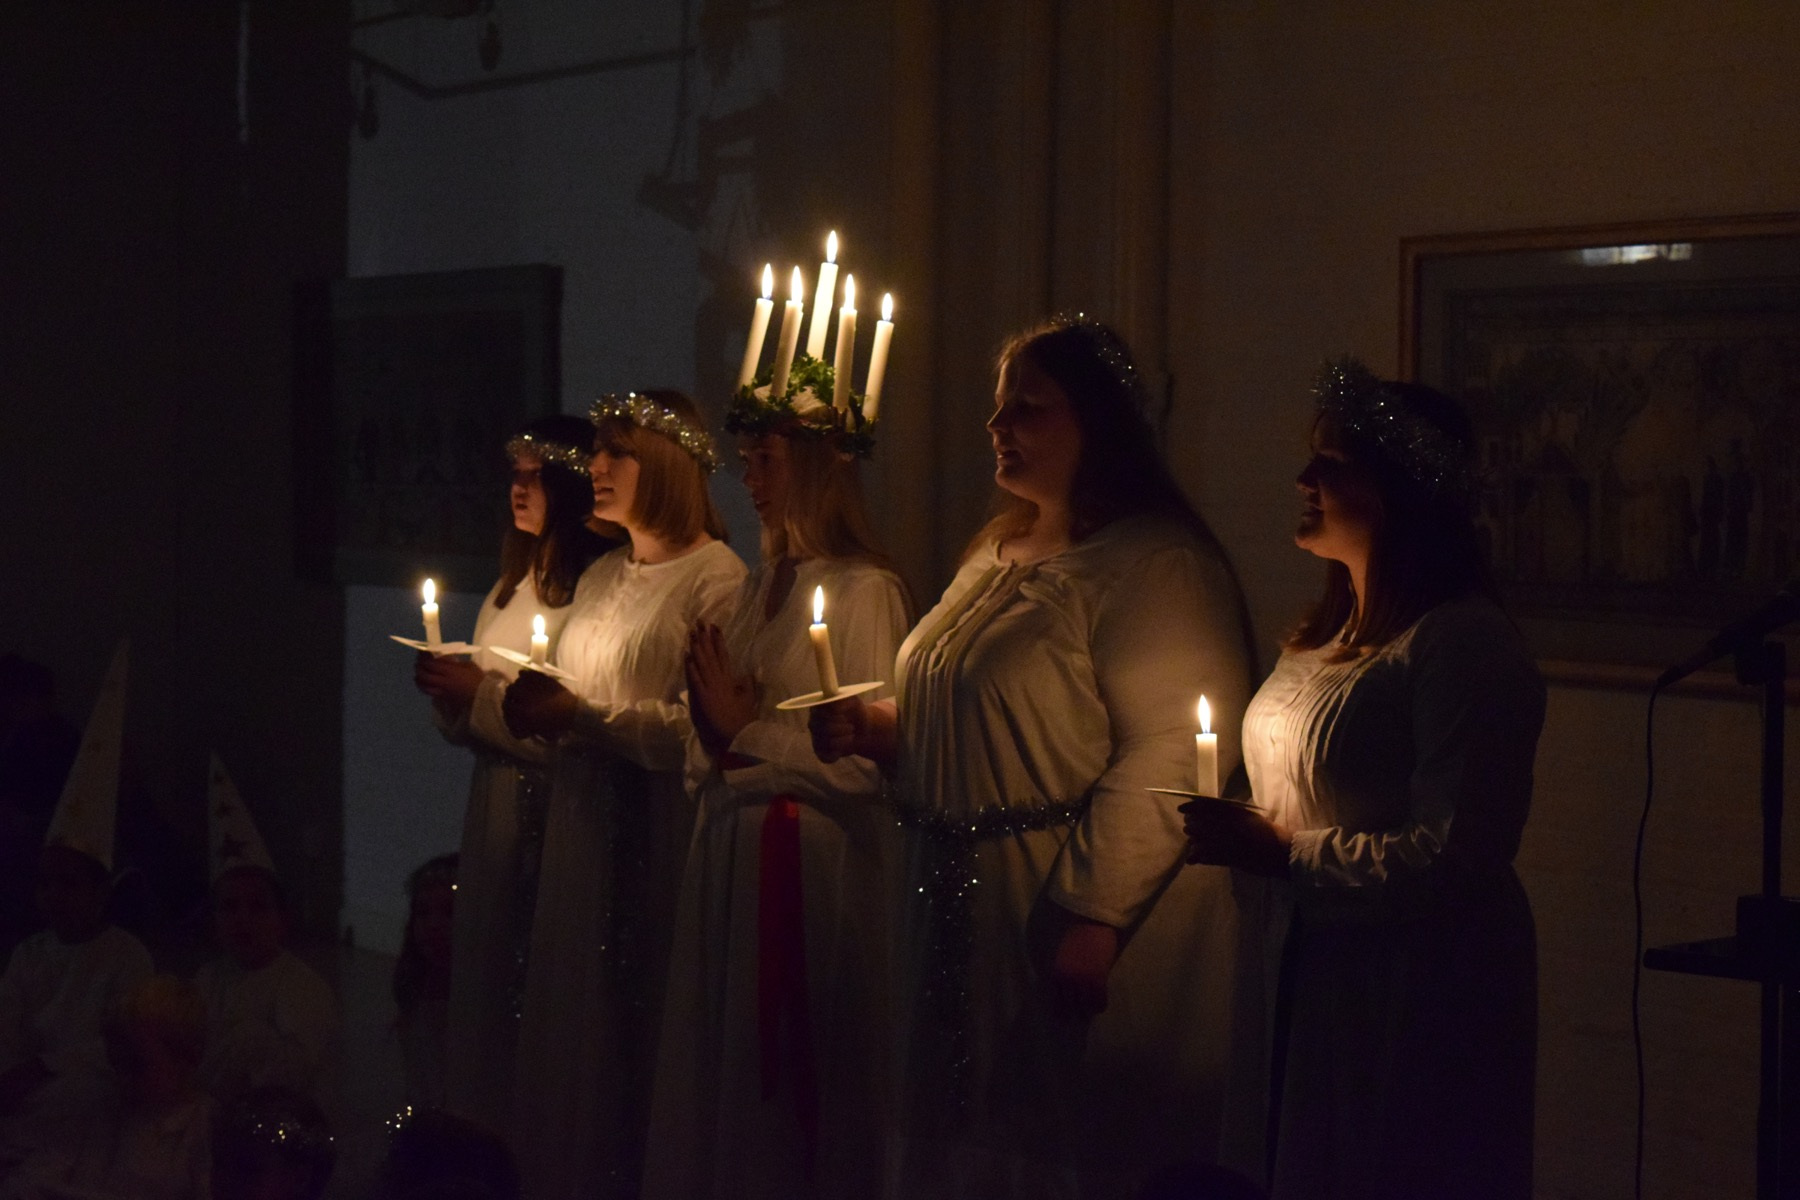 St Lucia Celebration at the Swedish American Museum